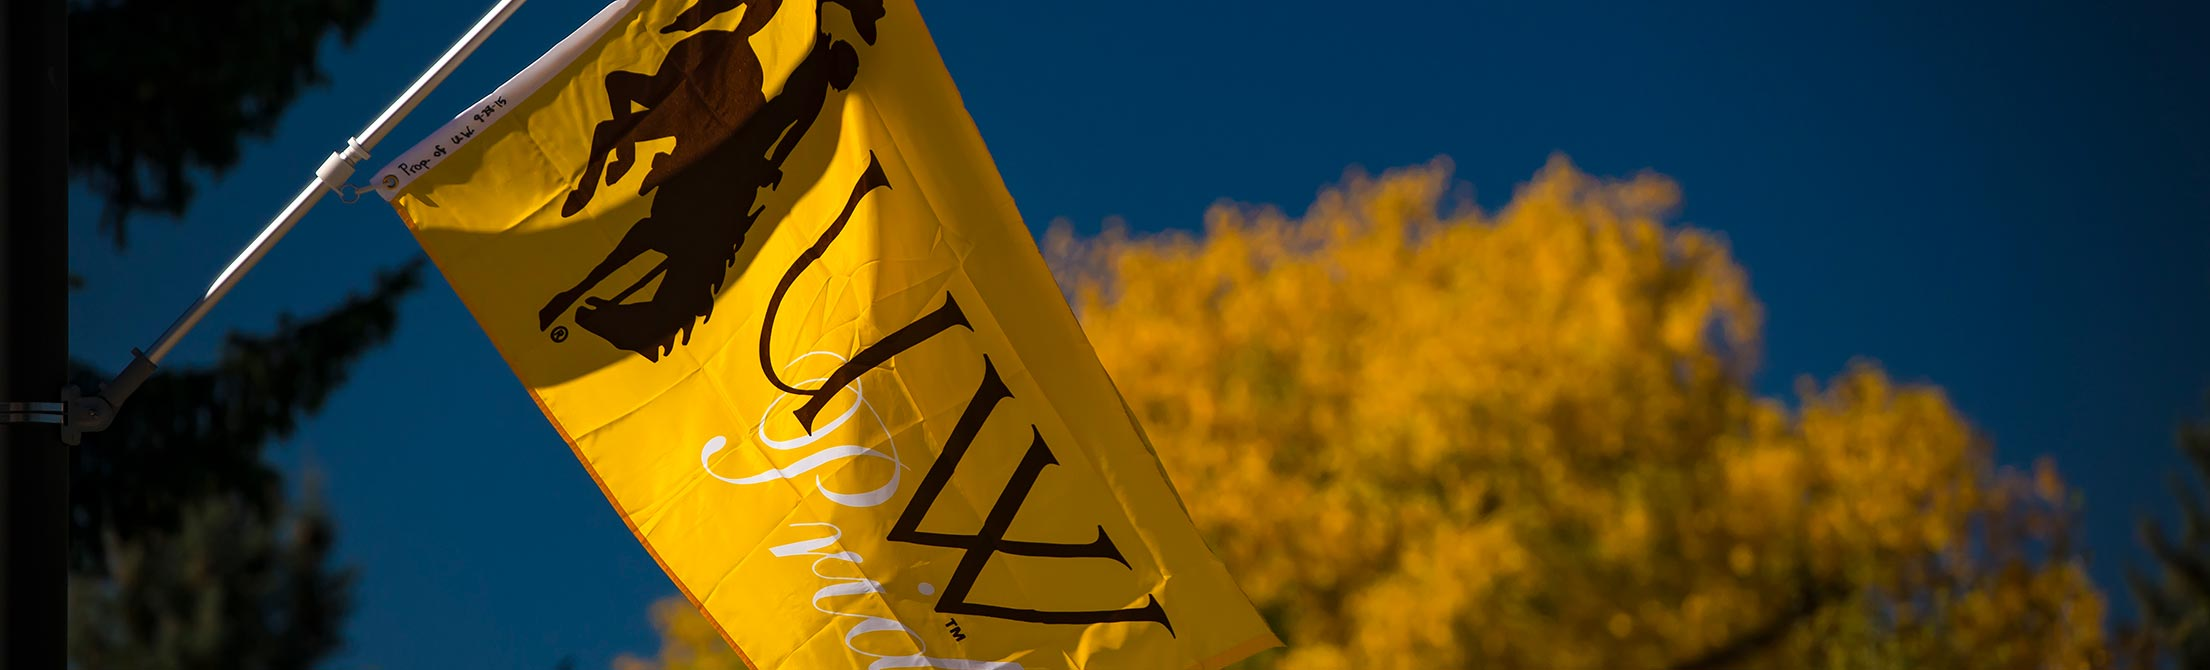 Image of UW school flag